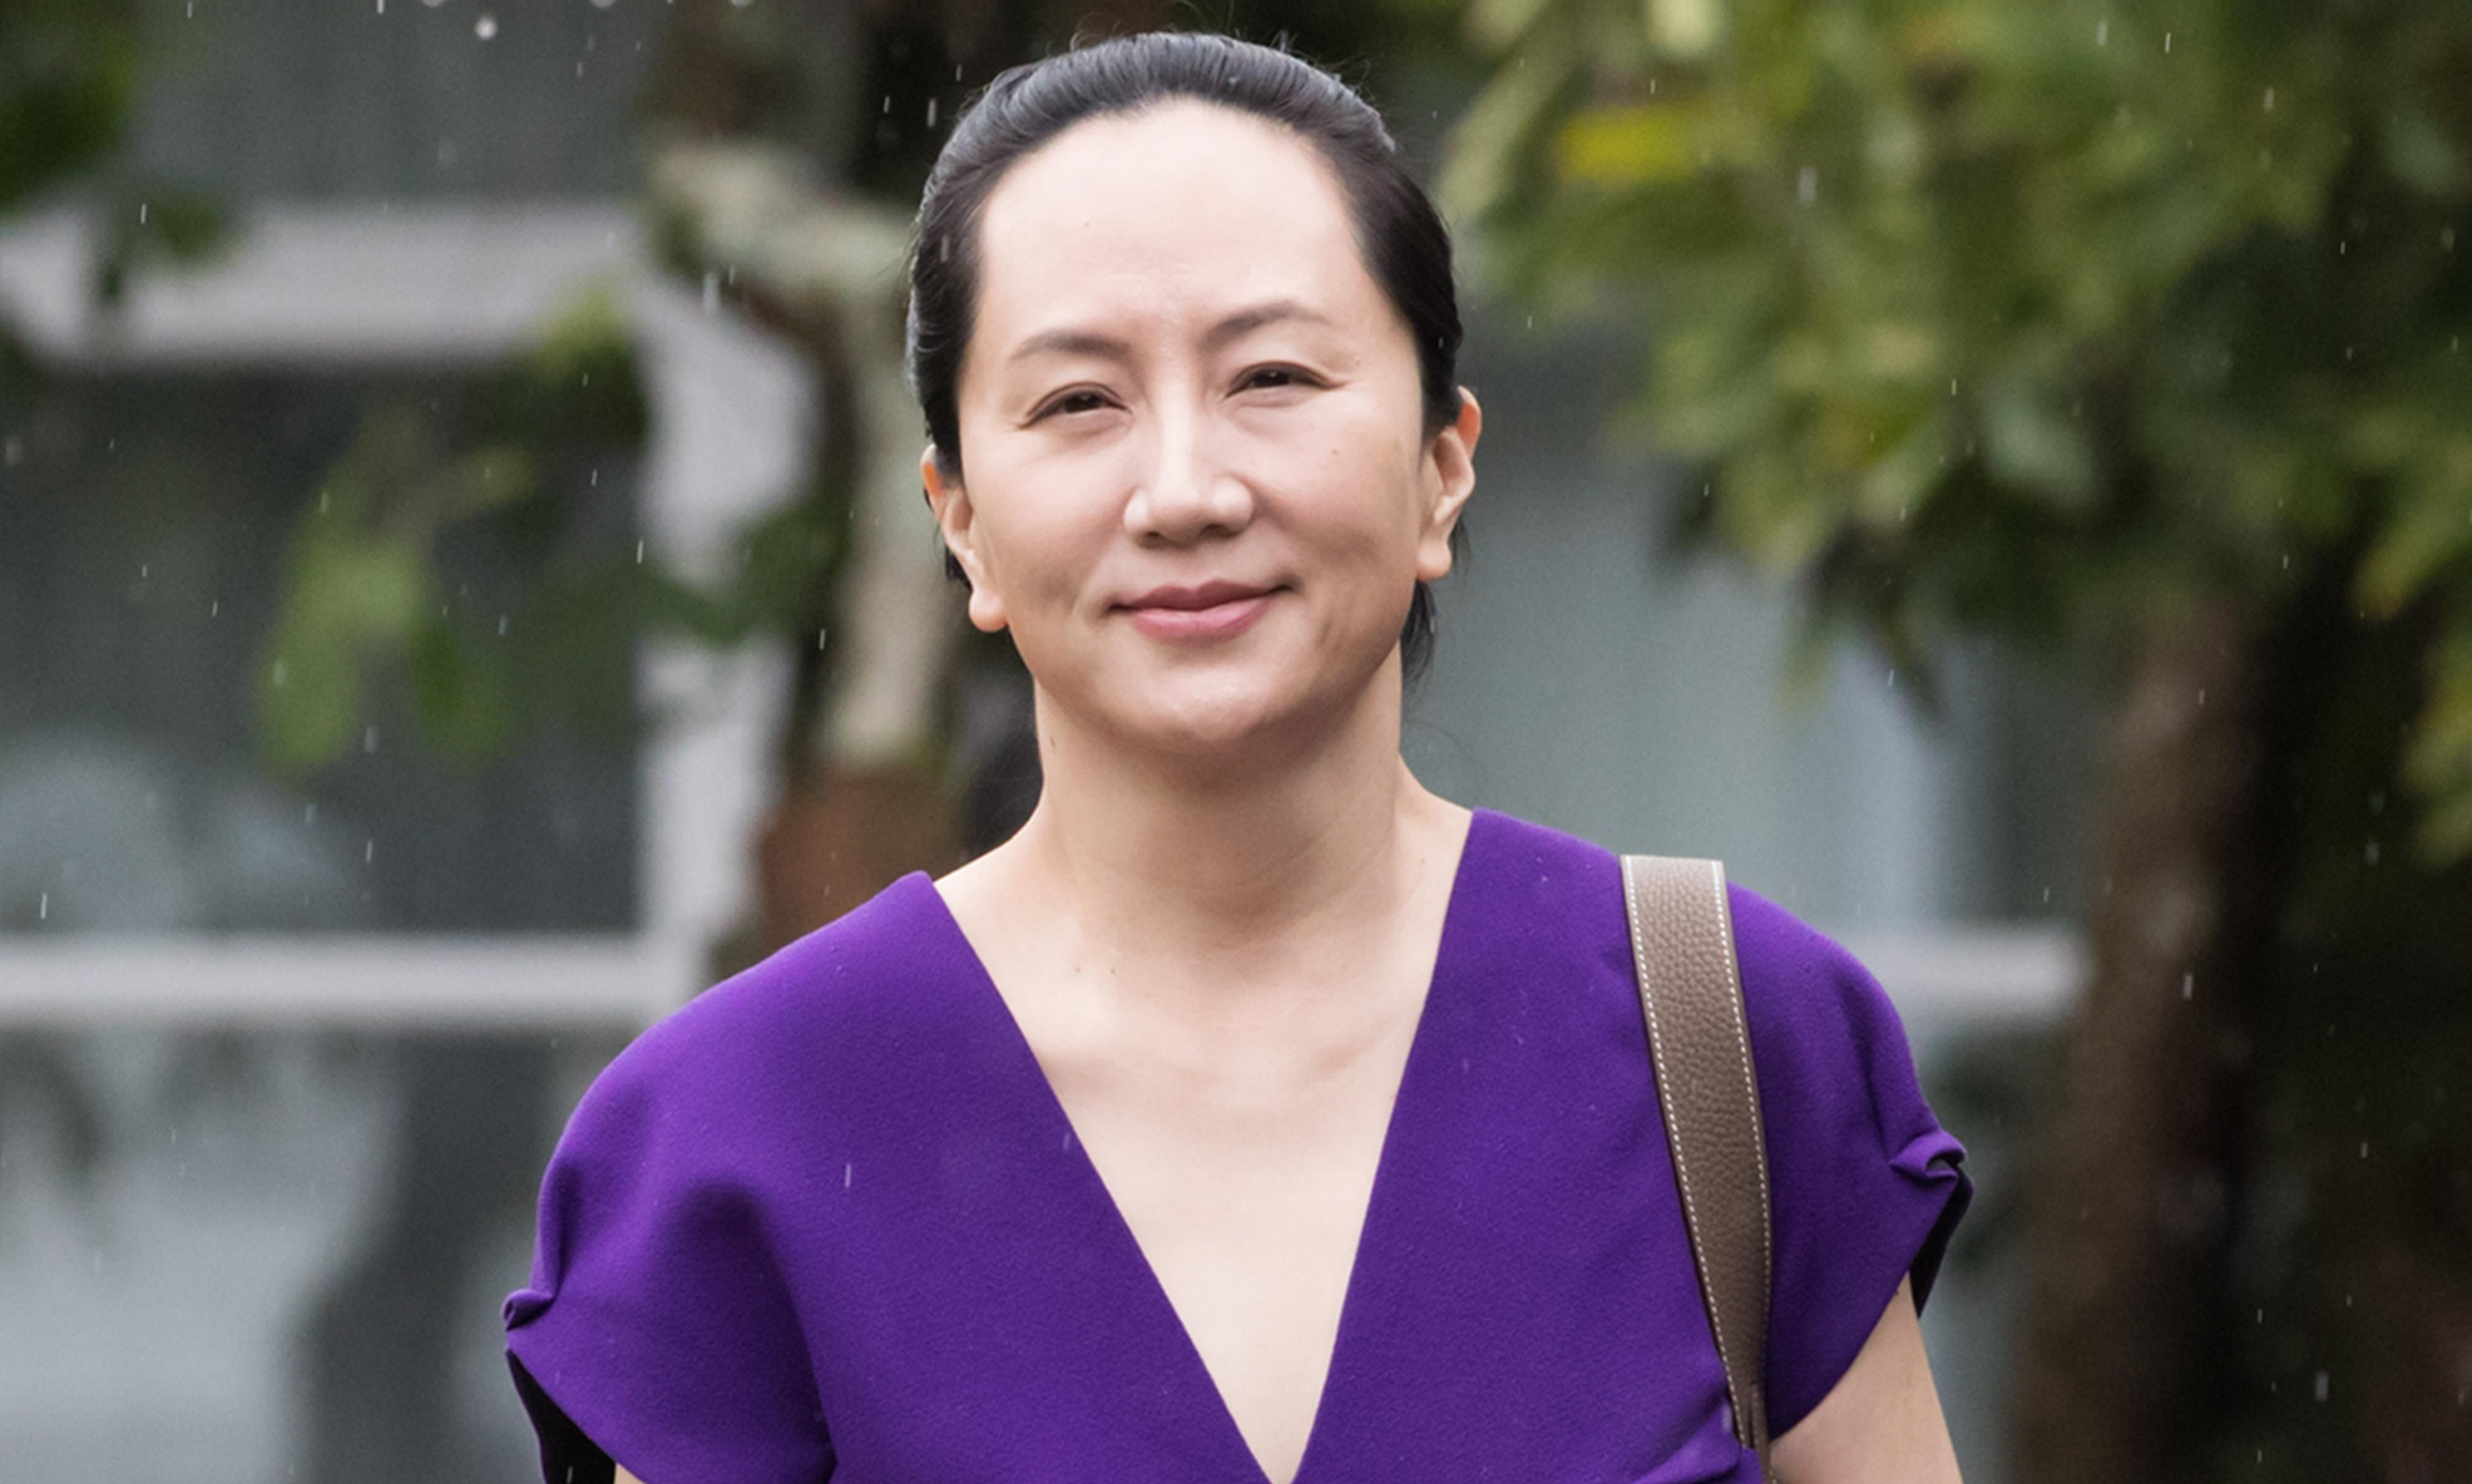 Canada officials misled Huawei executive, lawyers argue